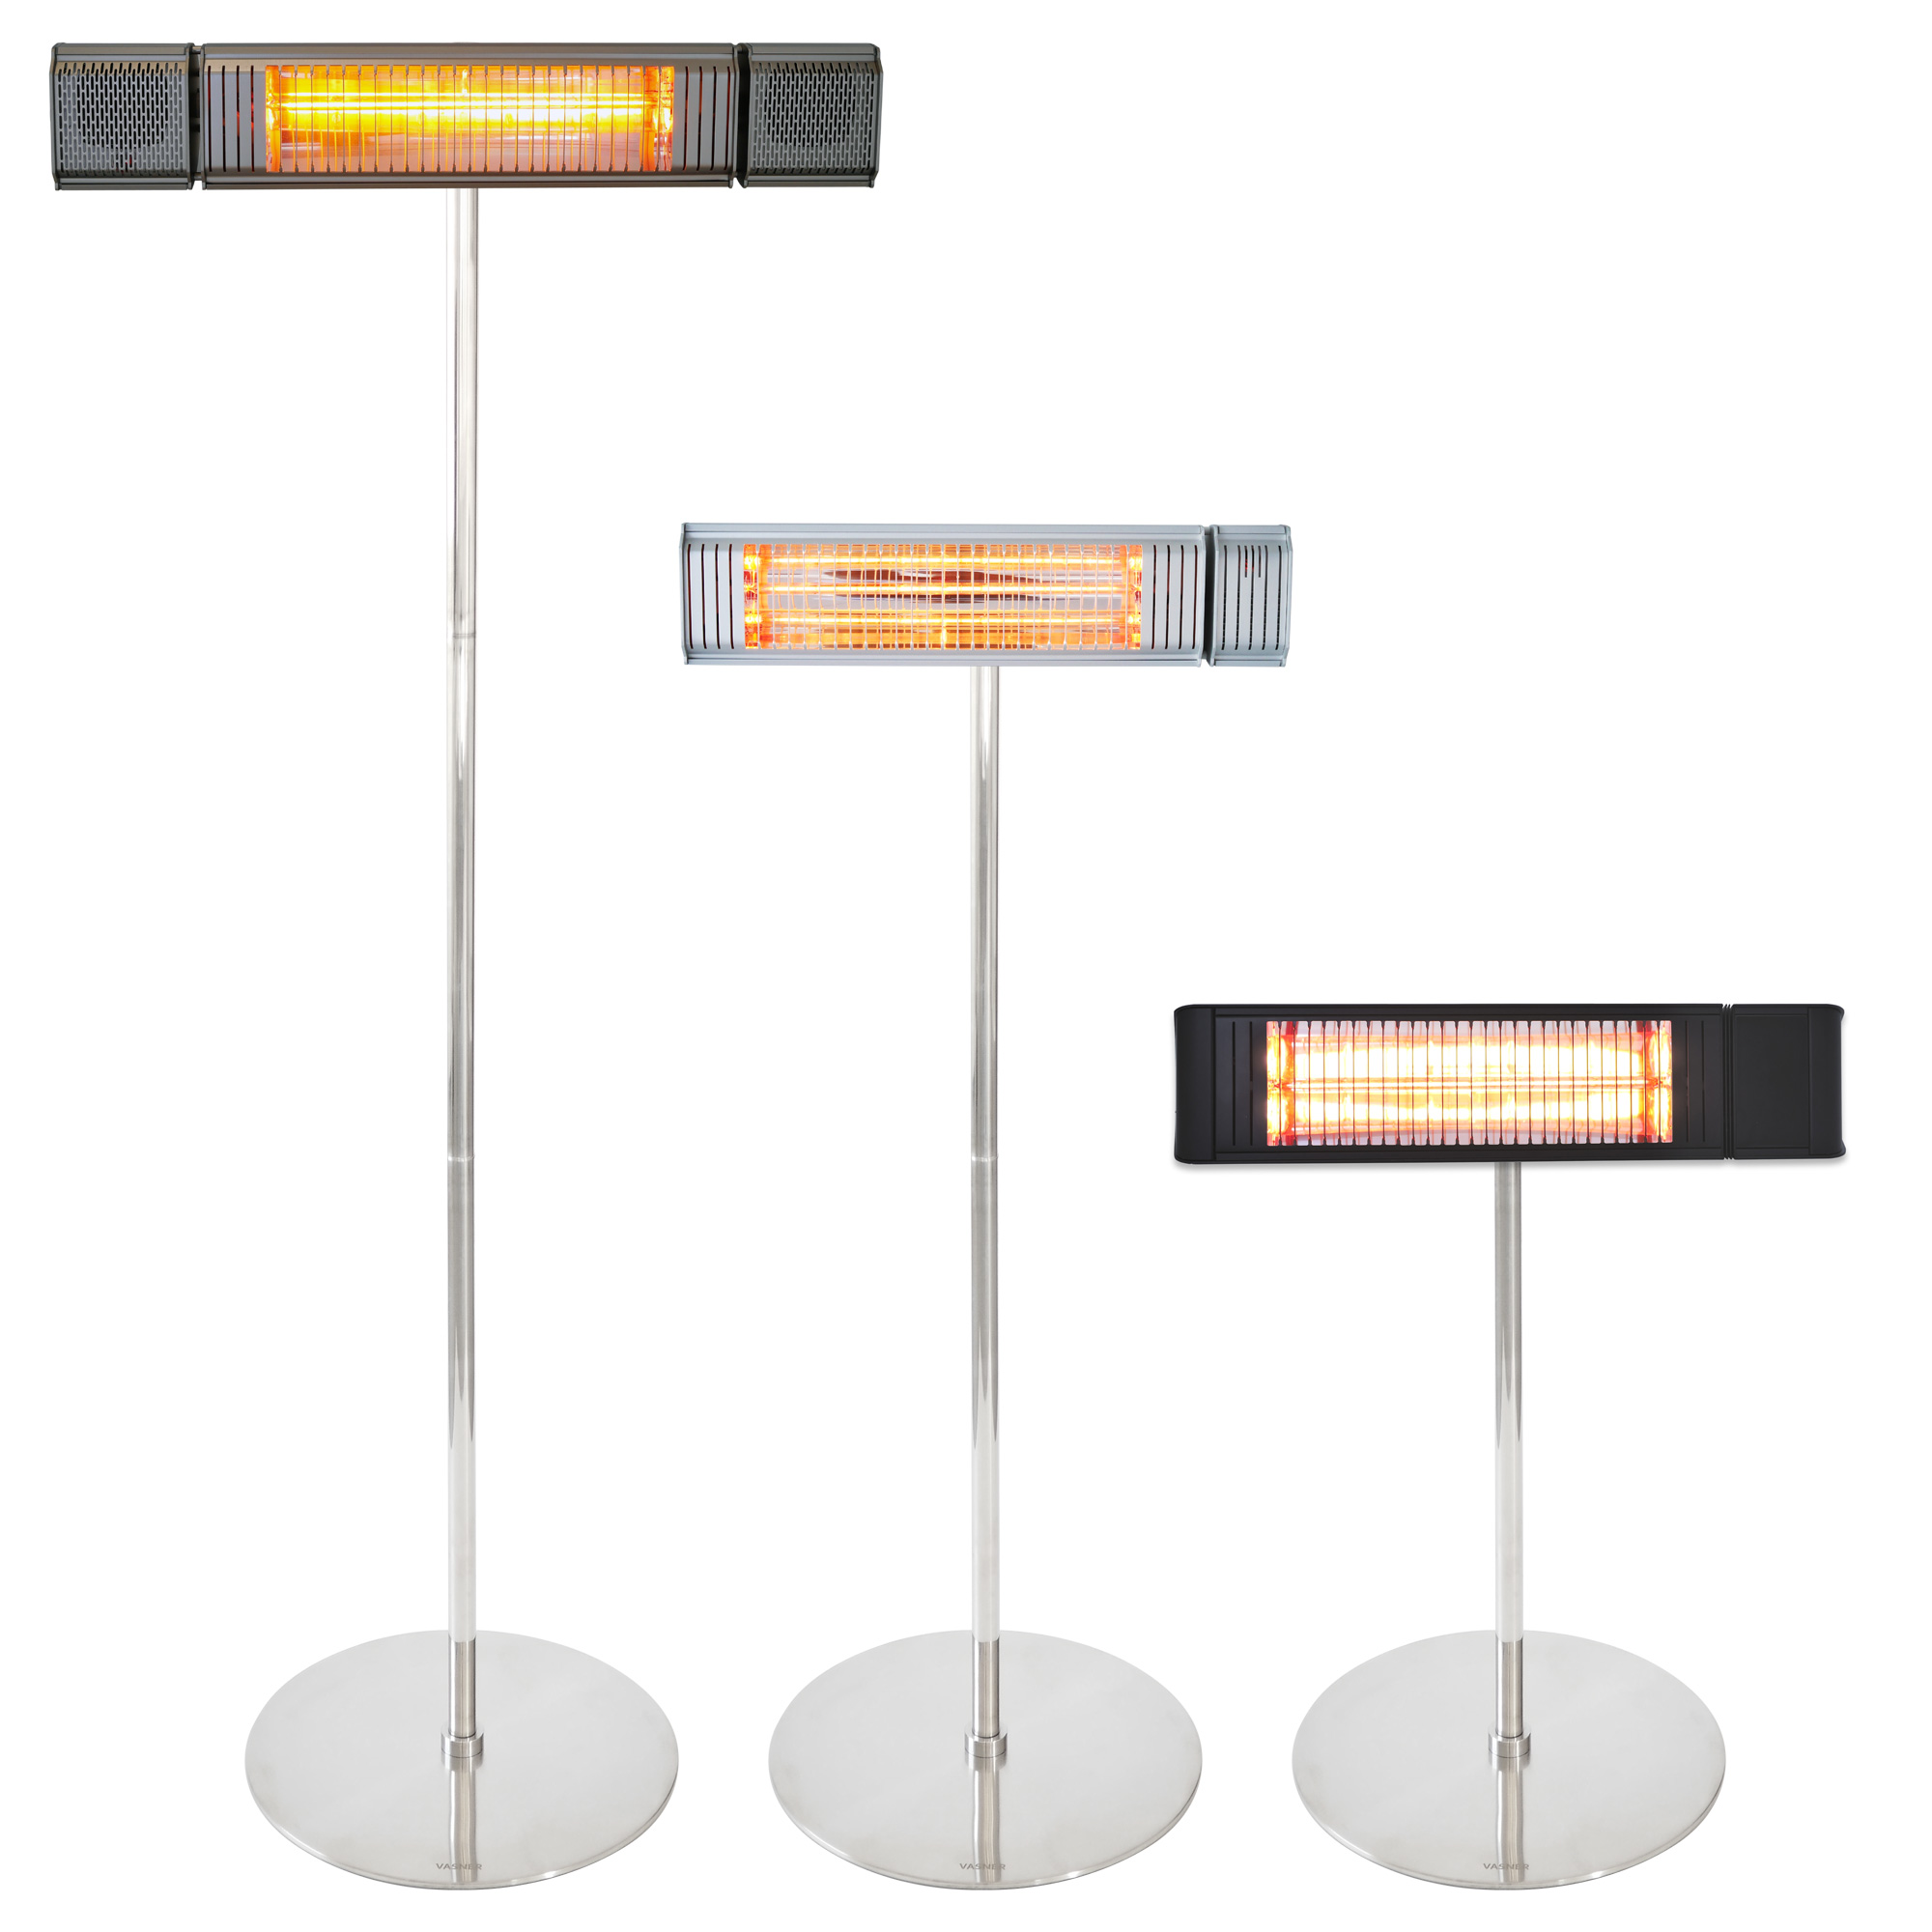 Patio-heater-stand-height-adjustable-accessories-for-ceiling-wall-heaters